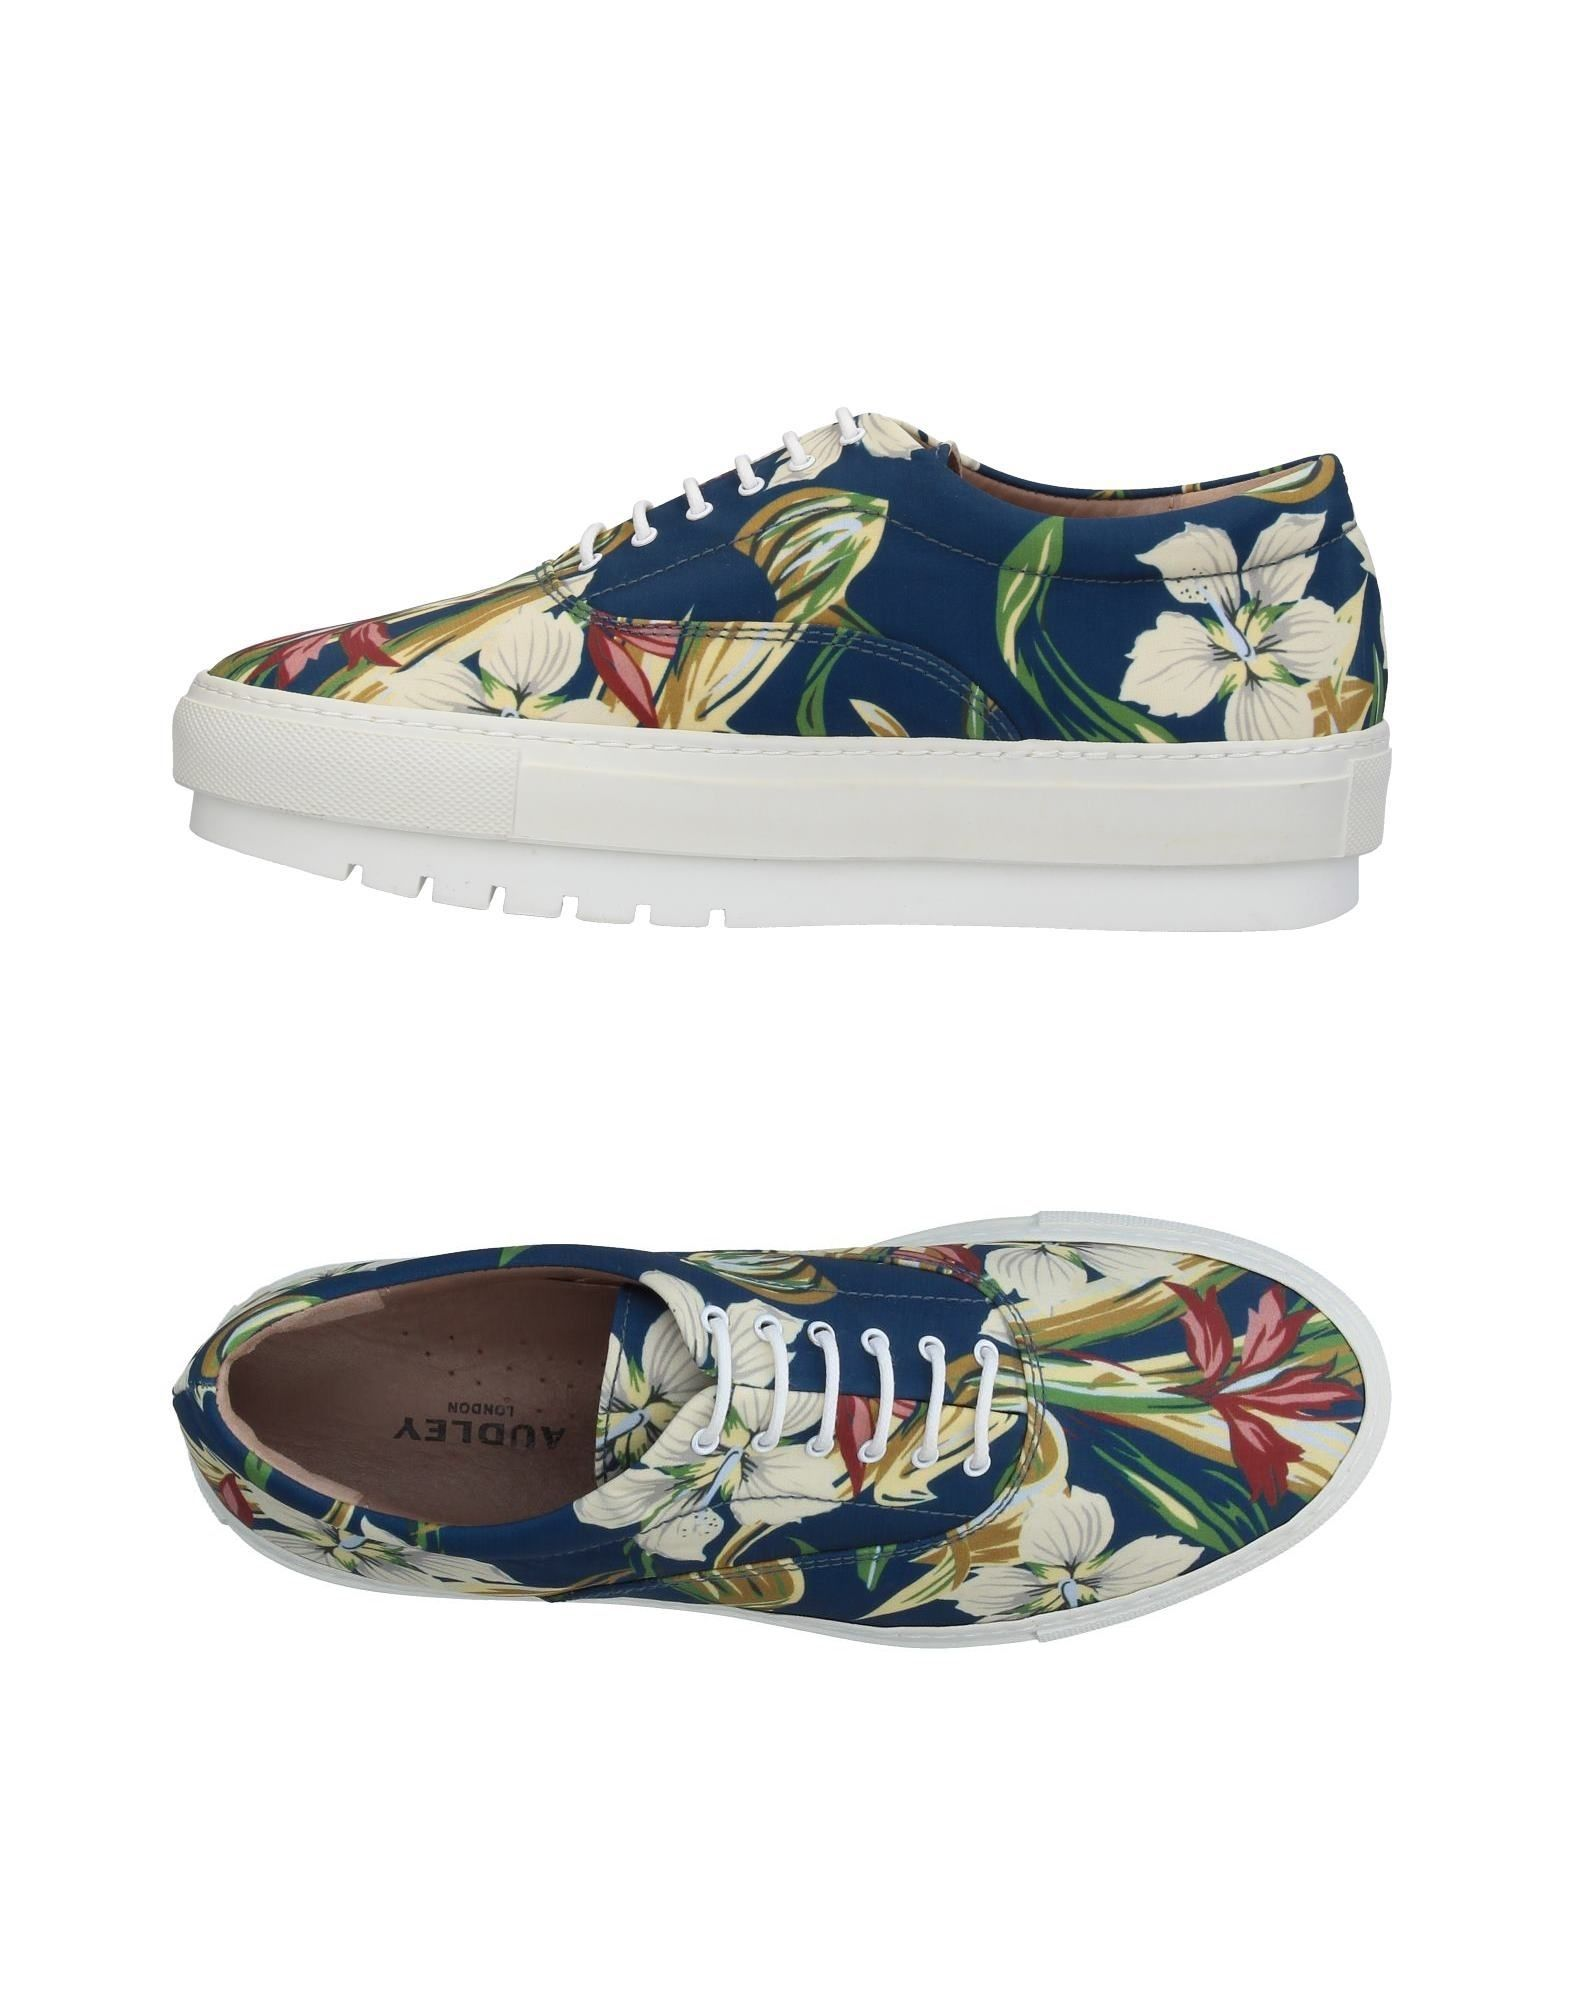 A buon mercato Sneakers Audley Donna - 11366330WQ